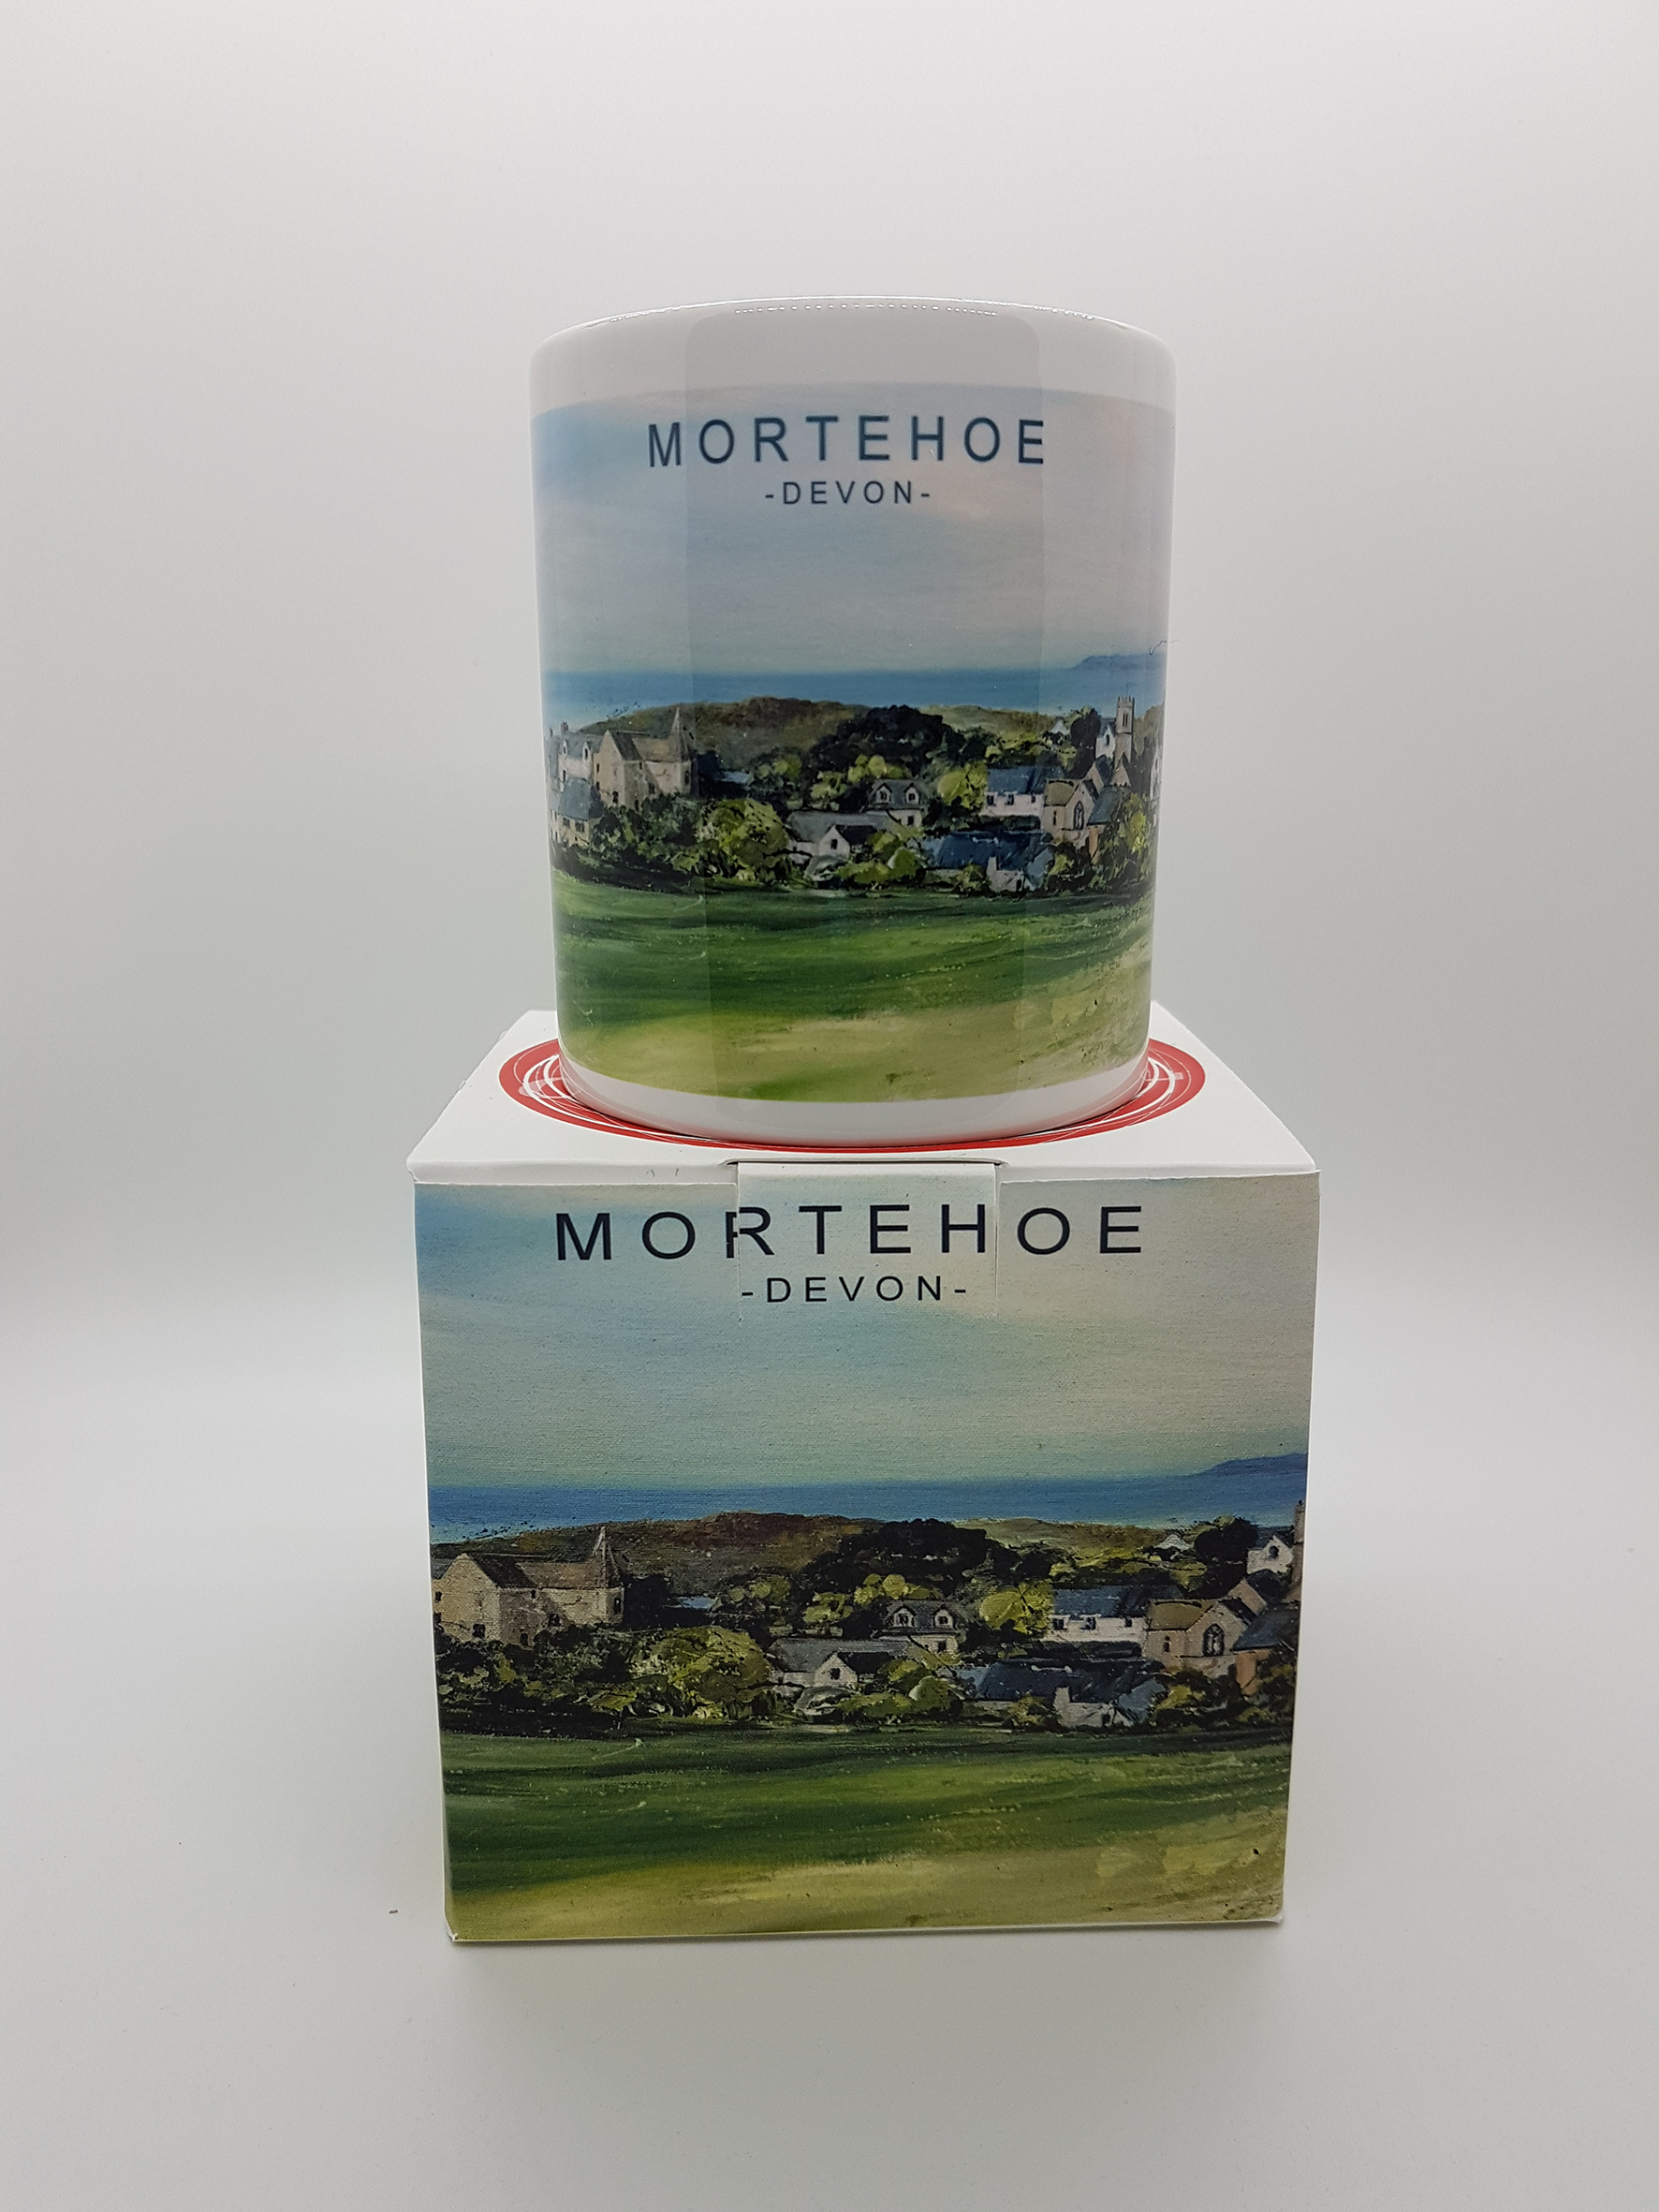 Mug featuring the village of Mortehoe